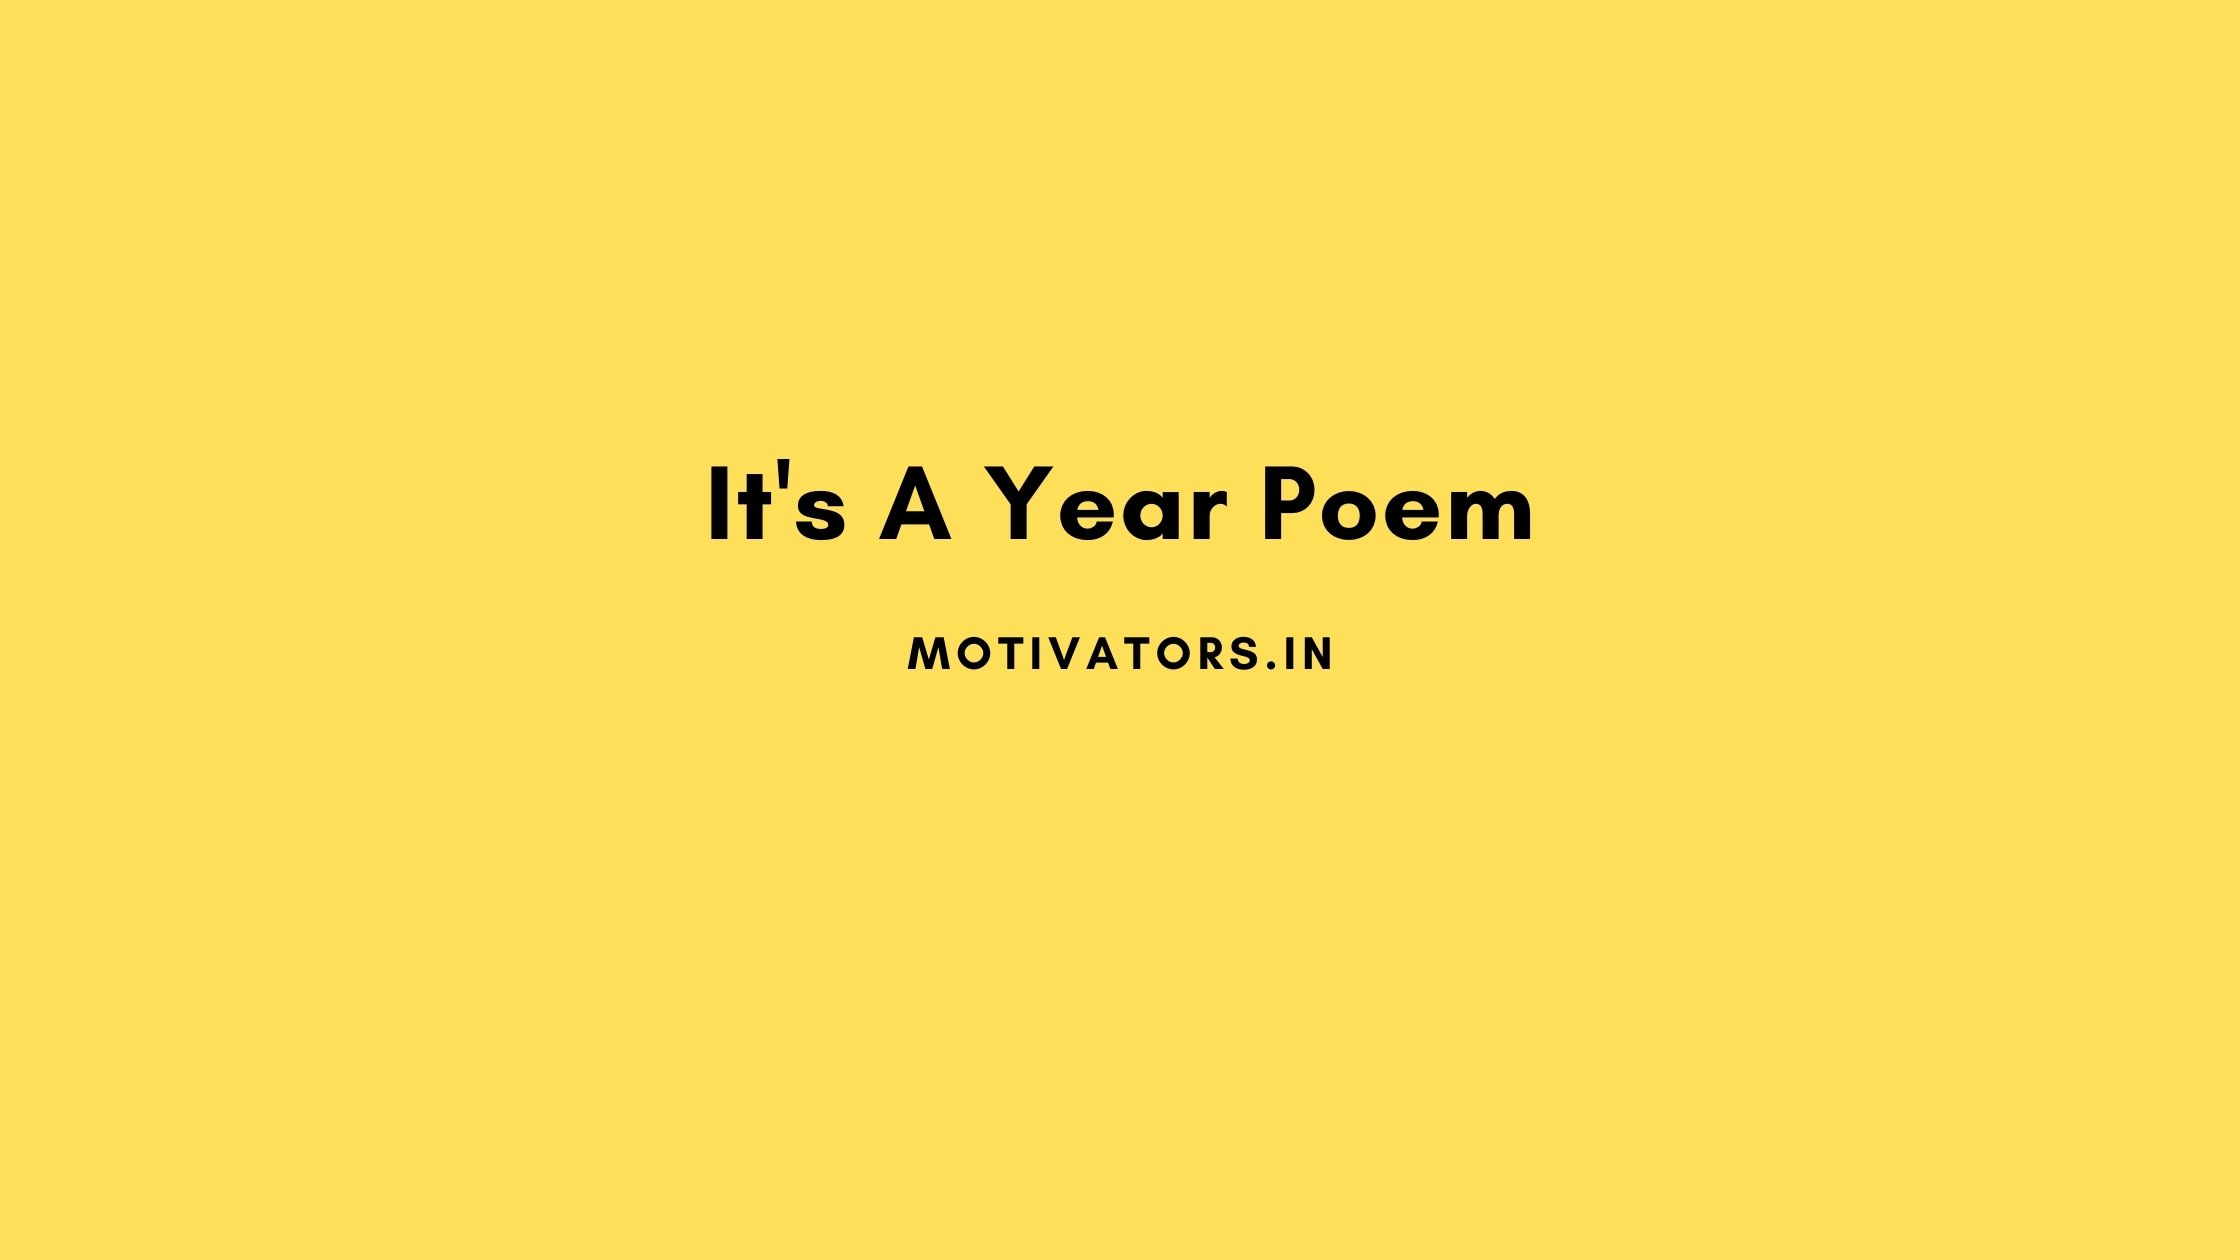 It's A Year Poem